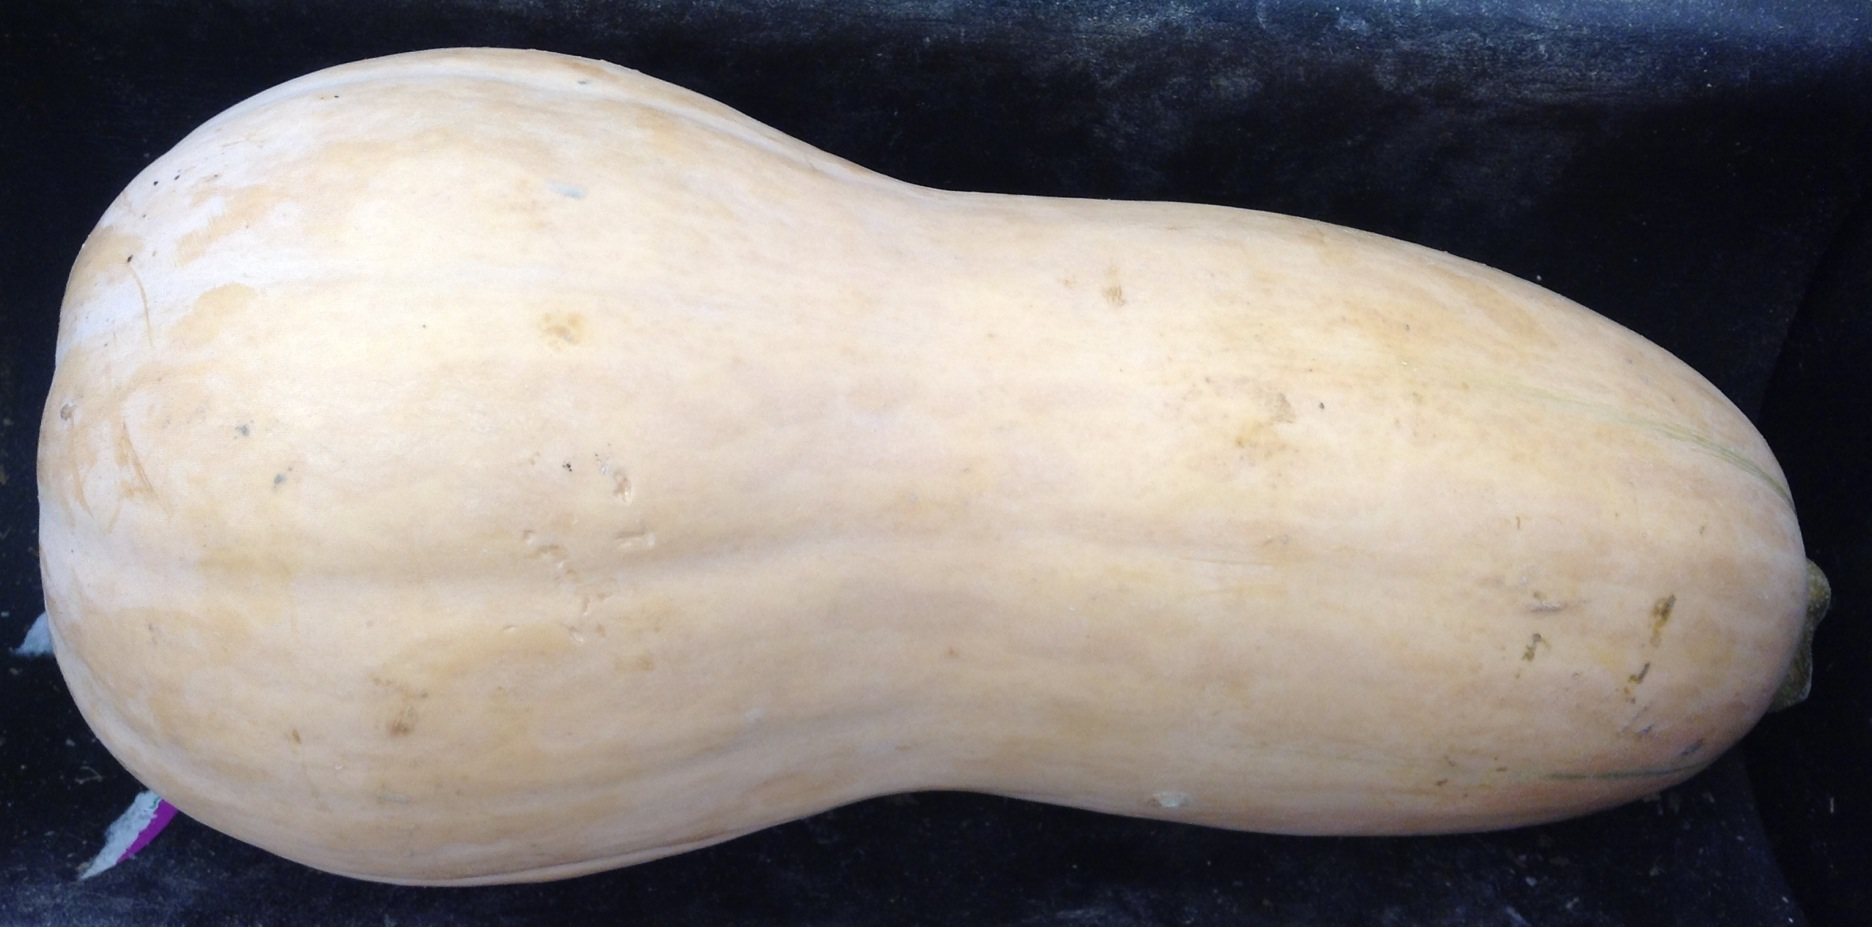 butternut mature singles Latest health & wellbeing news, comment and analysis from the guardian, the world's leading liberal voice.